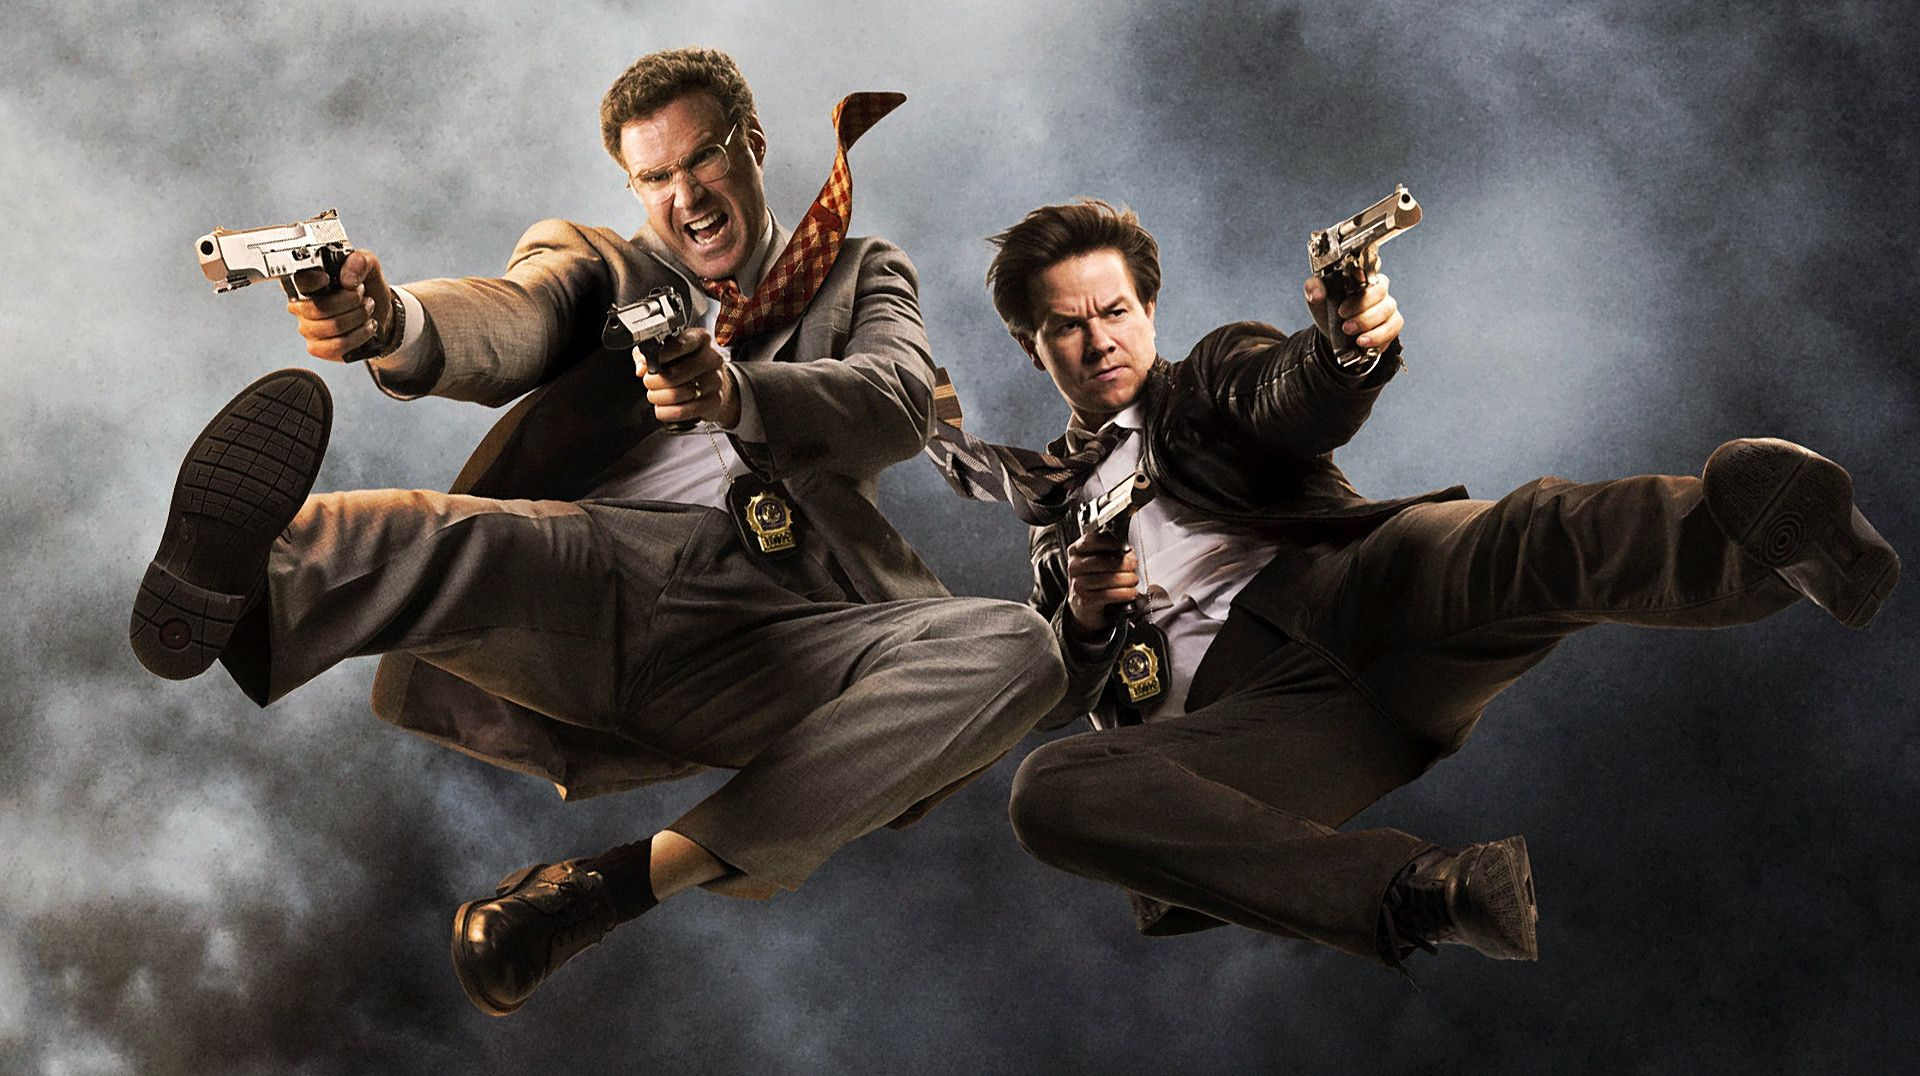 Paramount want Mark Wahlberg instead of Vince Vaughn to team with Will Ferrell in 'Daddy's Home'